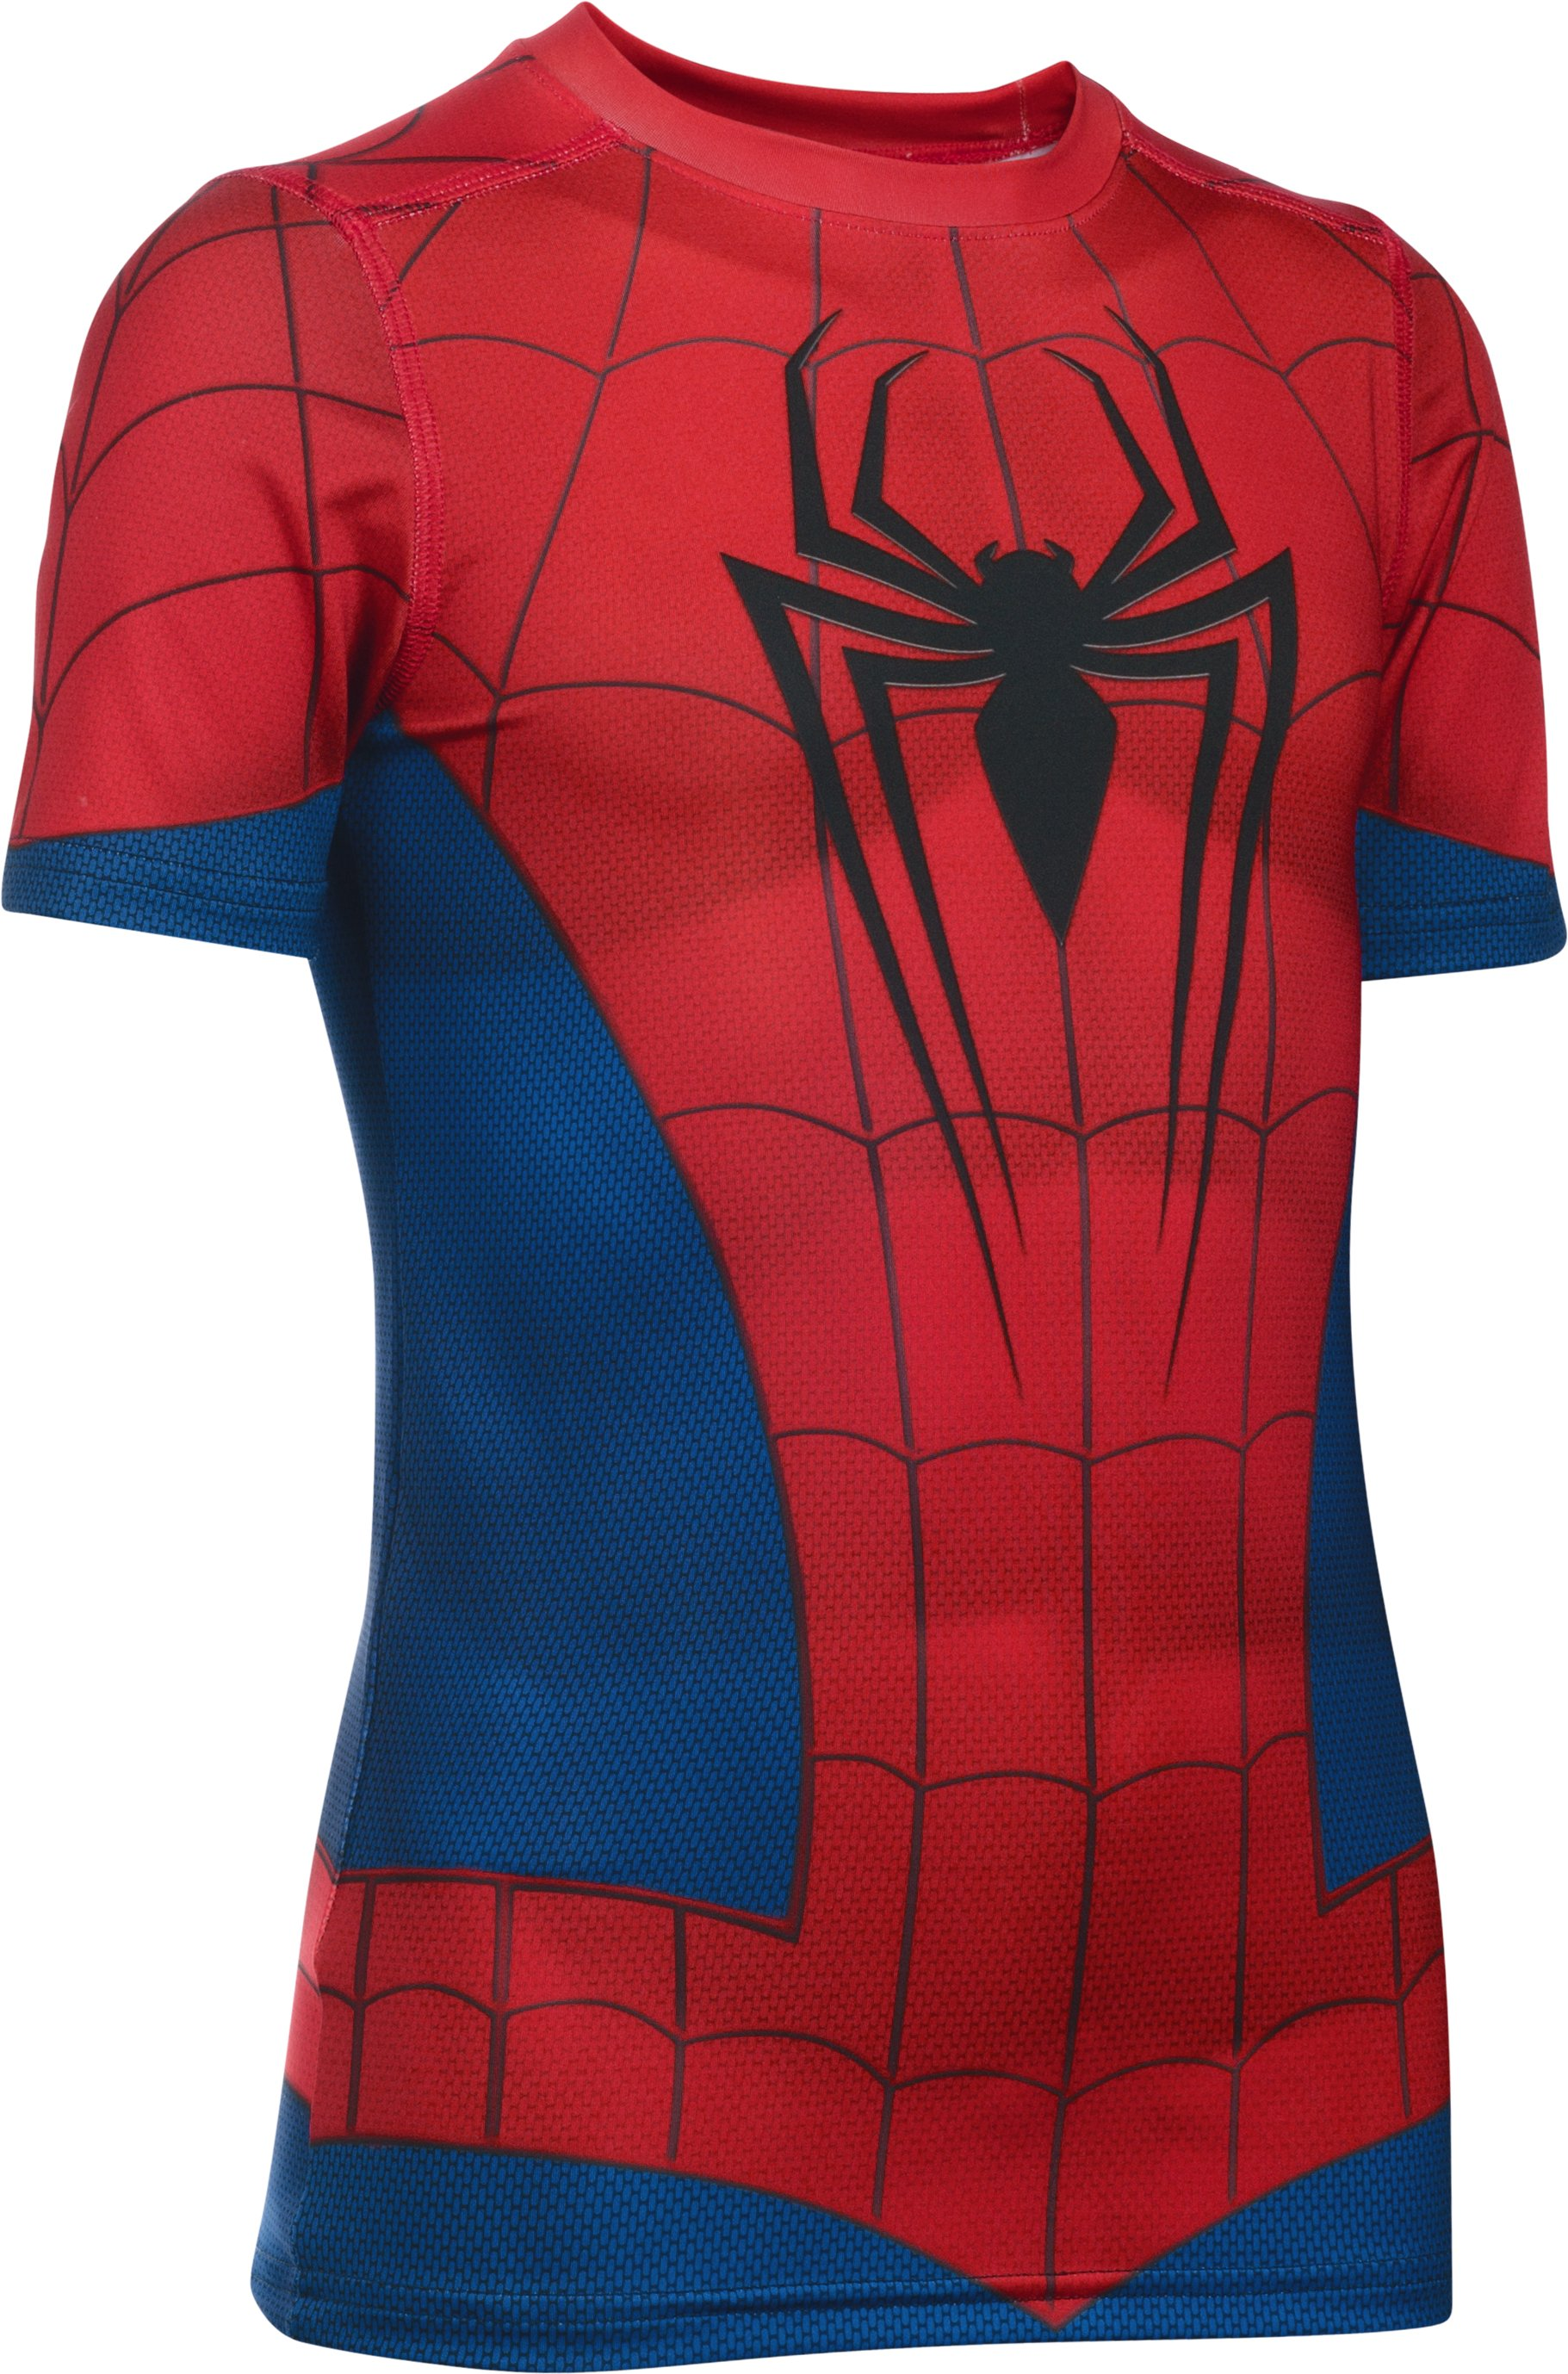 youth medium shirts Boys' Under Armour® Alter Ego Spider-Man Fitted Shirt The fabric, although not compression was nice and stretchy, so quite comfortable.